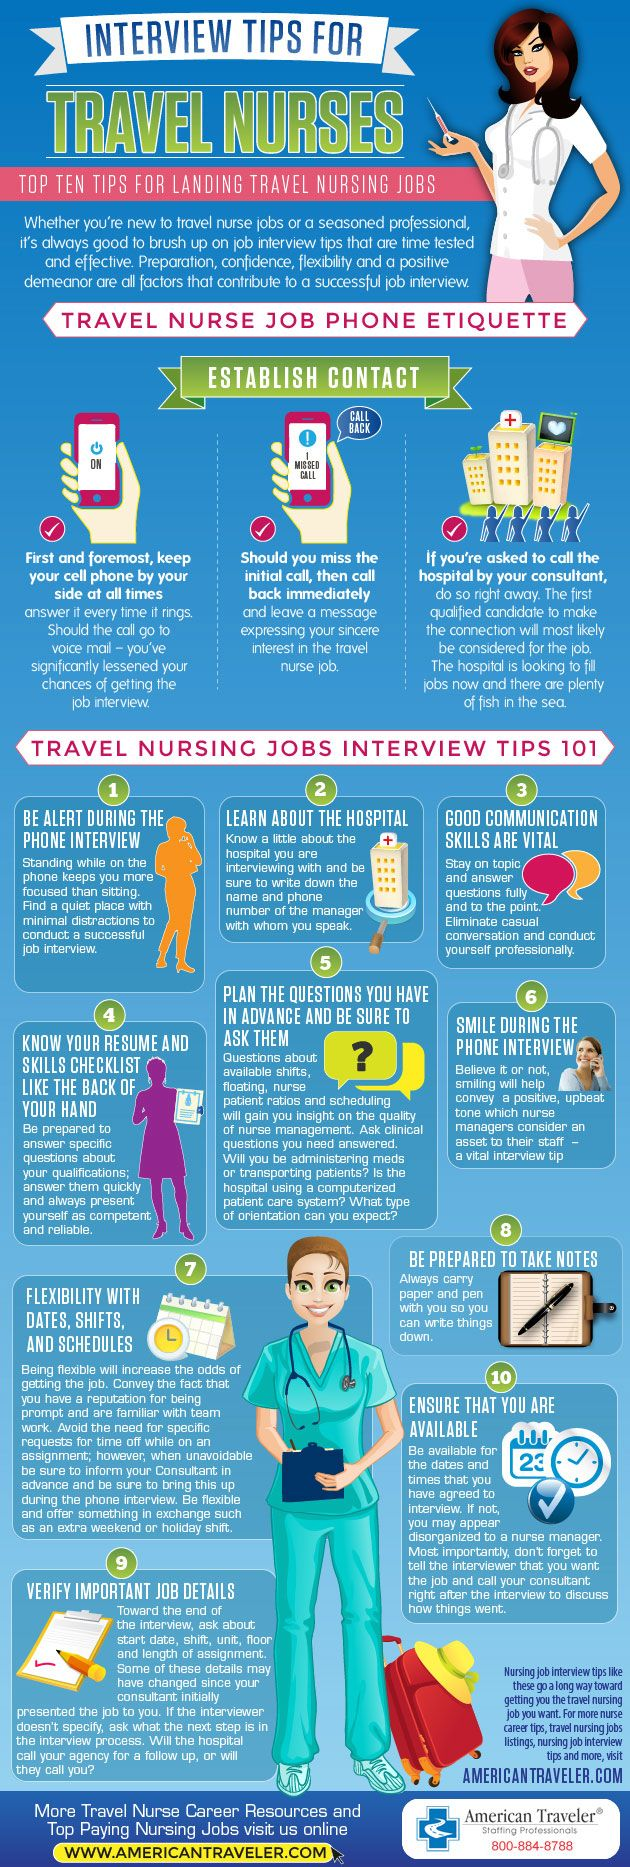 This #infographic will help nurses brush up on phone nursing job interview tips that are effective to help with preparation, confidence, flexibility, and a positive demeanor during the phone interview process. This infographic visualizes all of the factors that contribute to a successful travel nurse job interview. - See more at: http://www.americantraveler.com/infographic/phone-interview-tips-for-travel-nurses.aspx#sthash.RMN1P7Io.dpuf